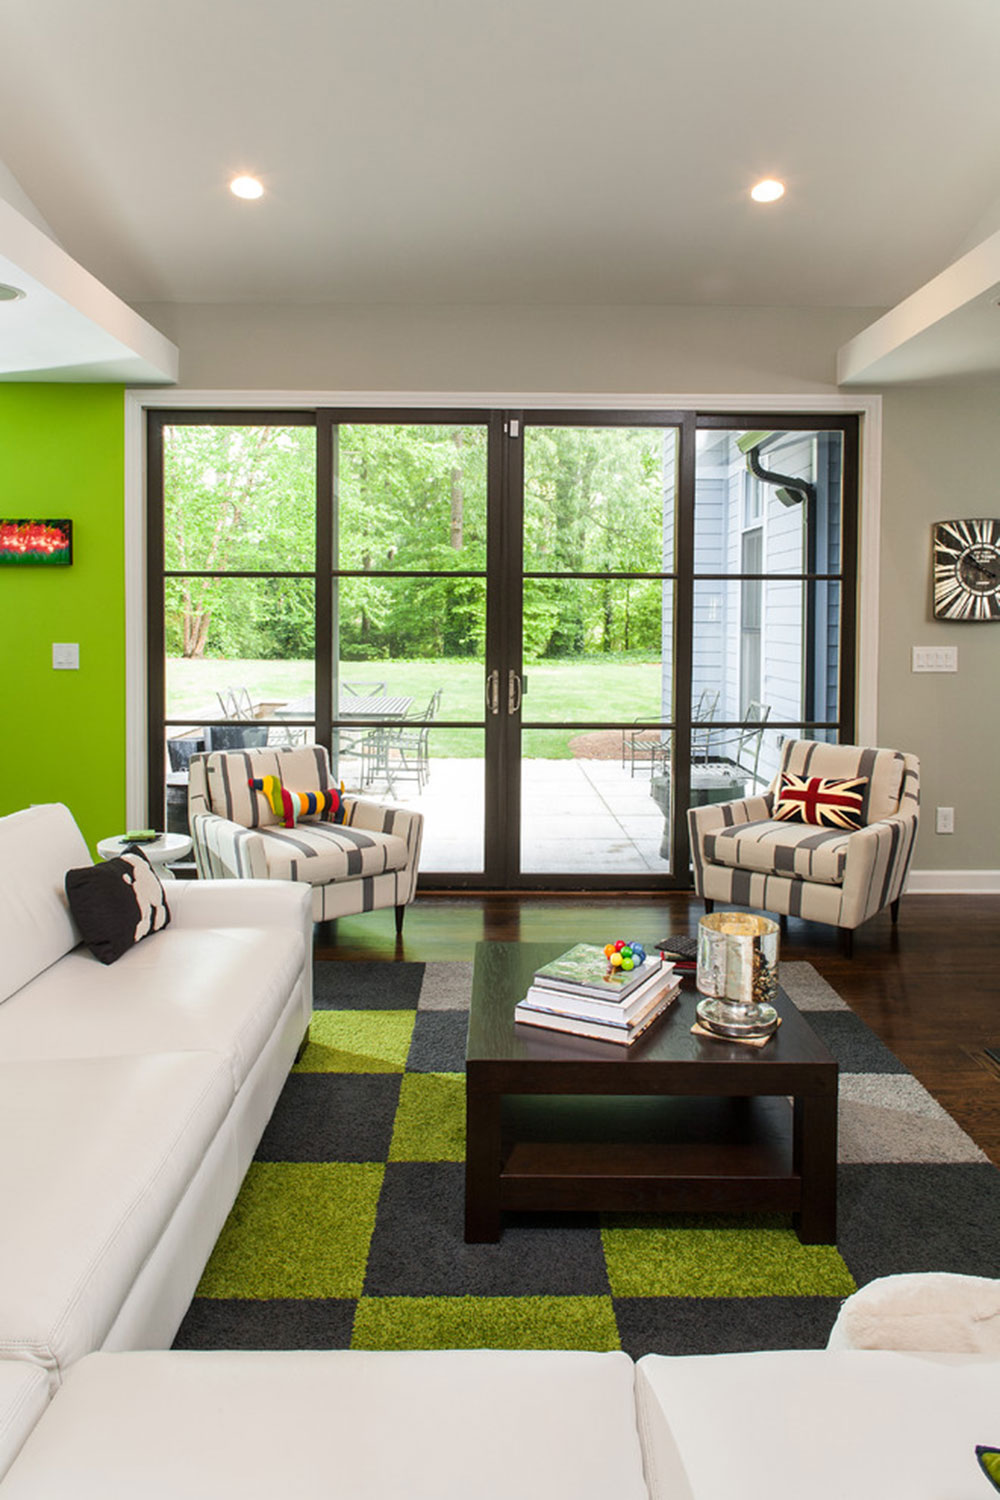 How to Select Energy Efficient Windows 8 How to Select Energy Efficient Windows